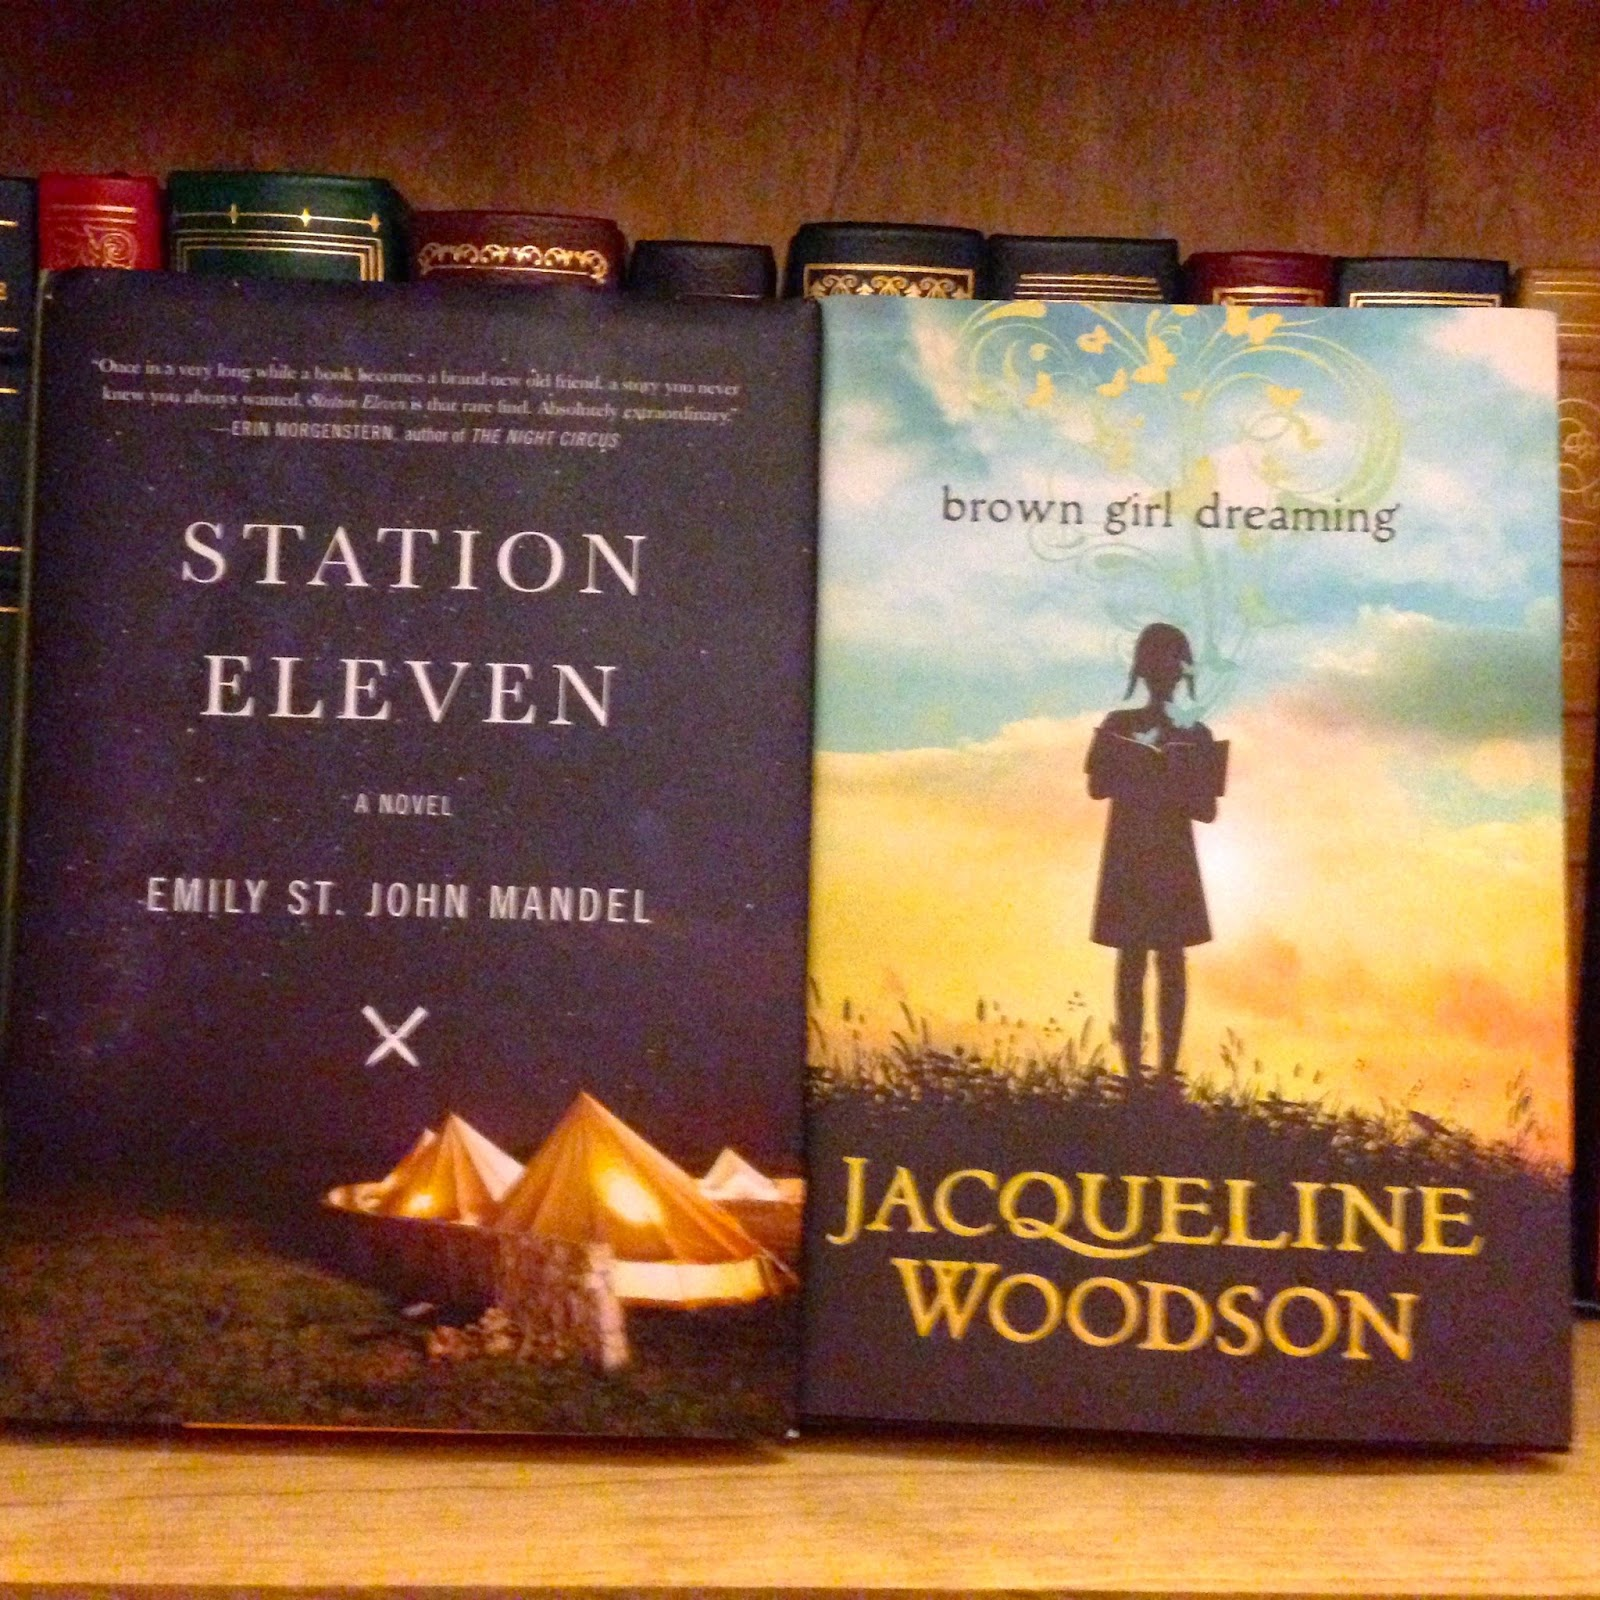 Two 2014 National Book Awardlonglisted Titles Here, Emily St John Mandel's  Station Eleven (alas, No Signed Copy, As I Missed Today's Session) And